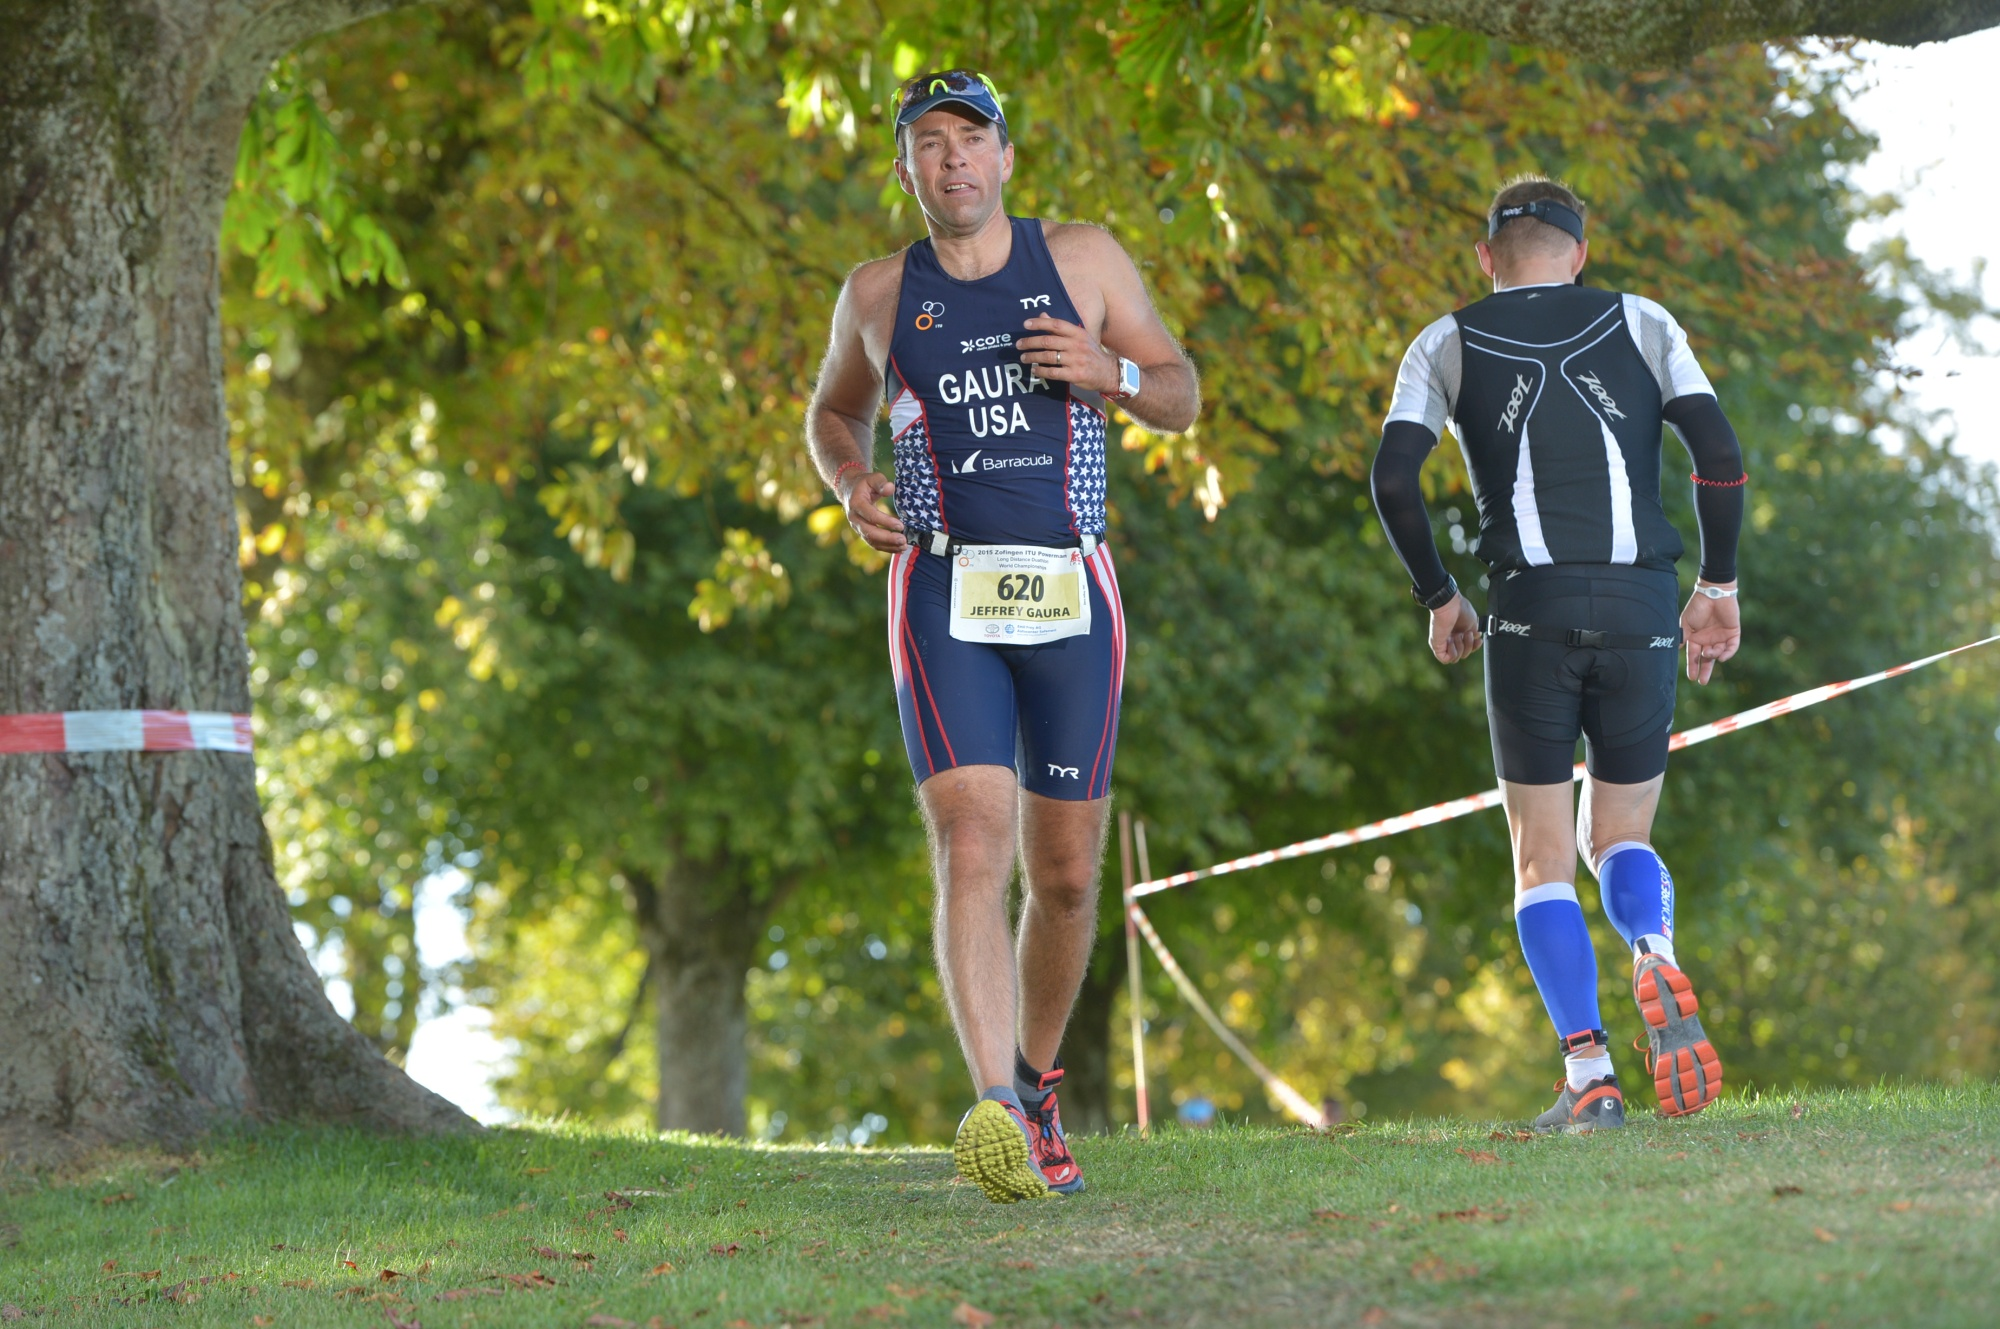 Jeff Gaura, running the final 18 miles at Zofingen.